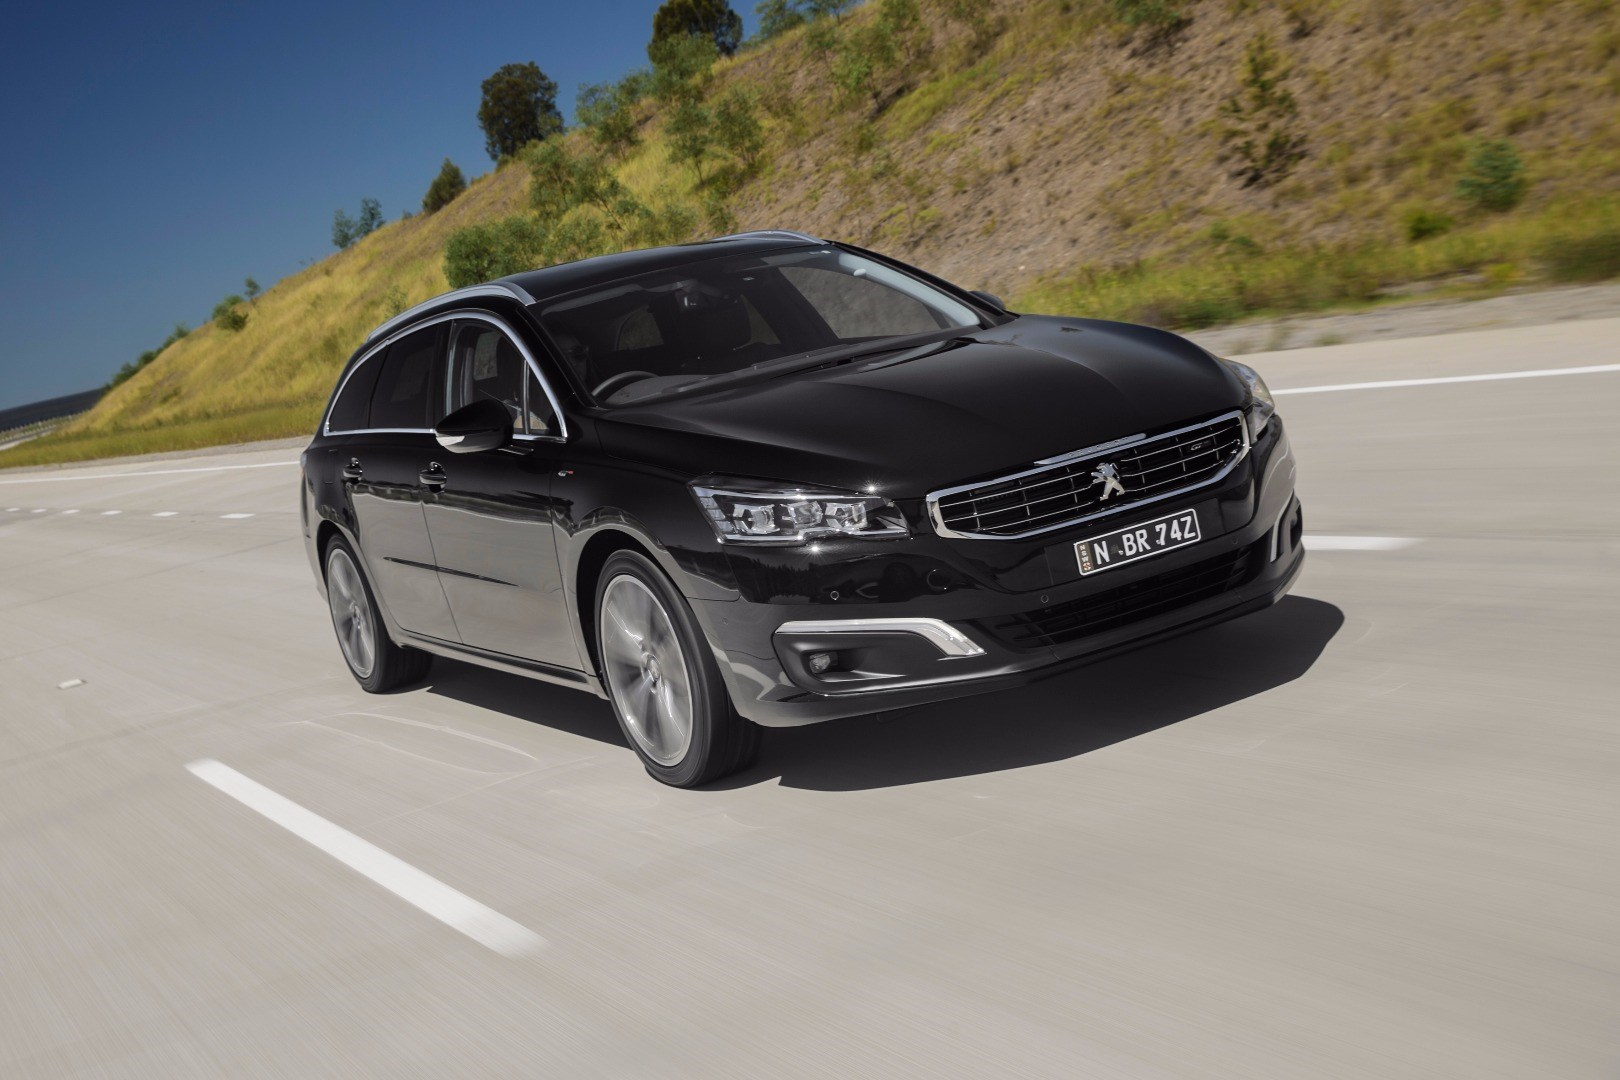 2018 peugeot 508. contemporary 2018 peugeotu0027s 508 successor planned for 2018 debut in peugeot